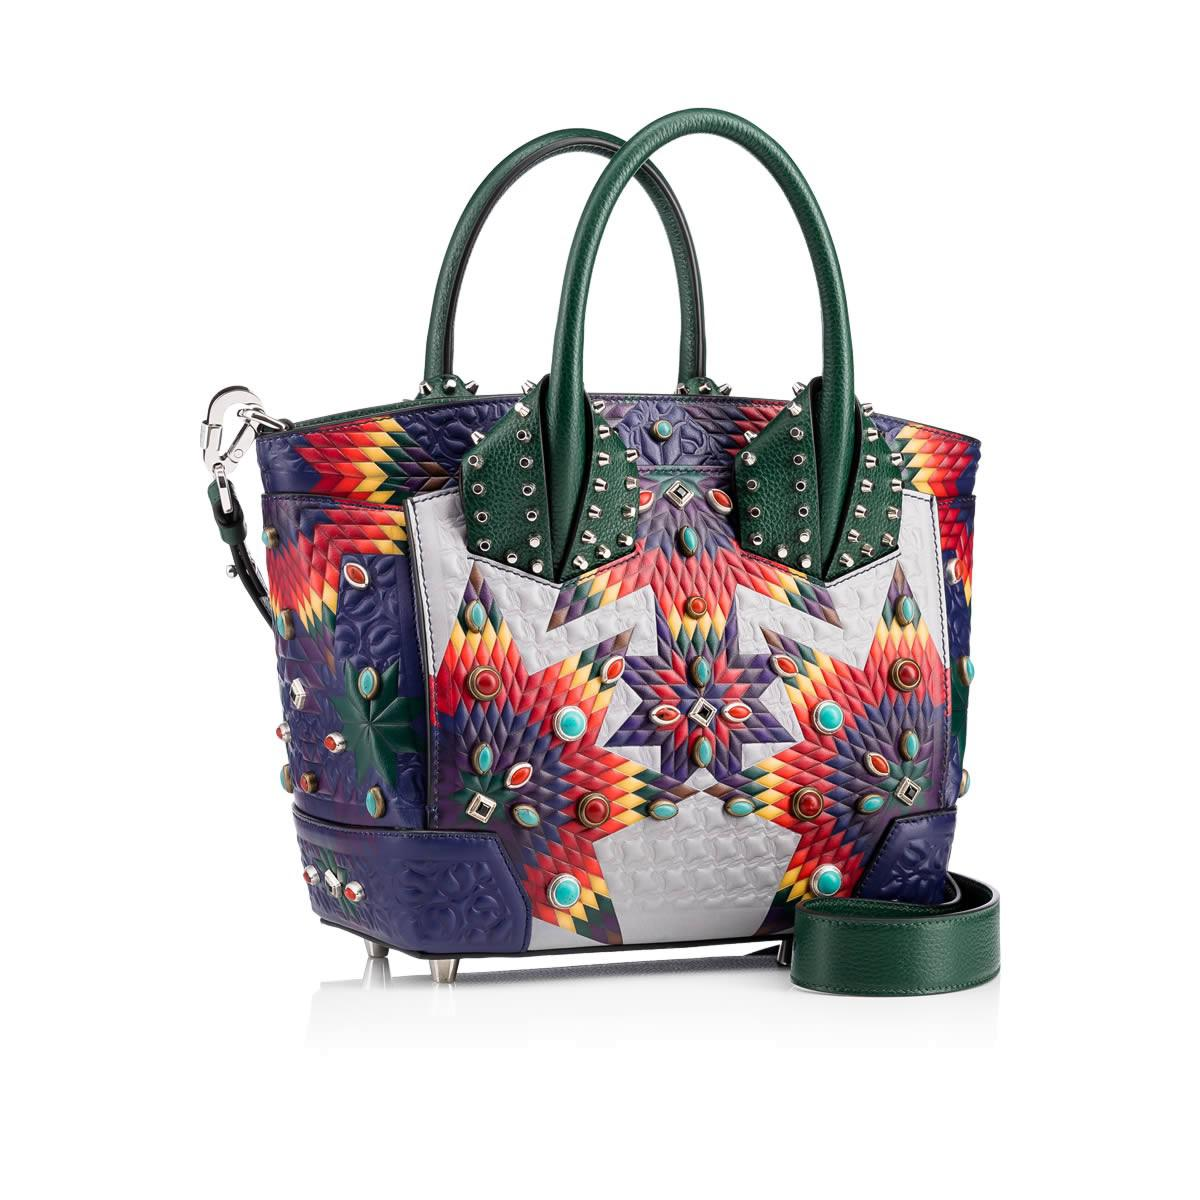 Lyst - Christian Louboutin Eloise Small Loubiquilted Tote Bag 3857bb2f8cc93